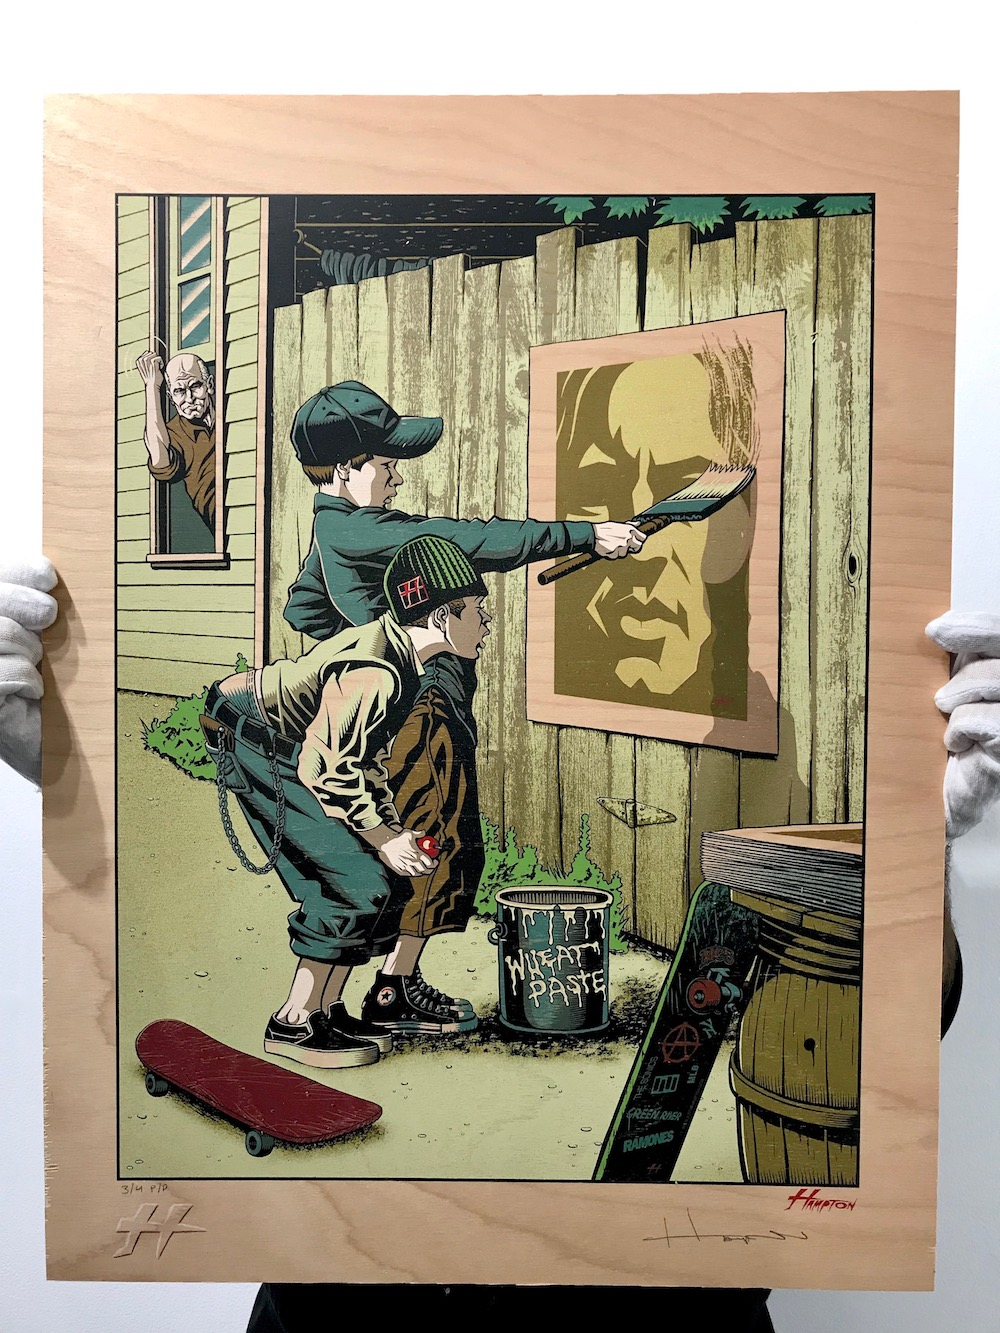 """Justin Hampton """"Wheat Paste Post Haste"""" - Limited Edition Fine Art Print9 color screen print with metallic gold ink on on birch wood panelprinter proofsigned and numbered$300available now in our PRINTS SHOP"""